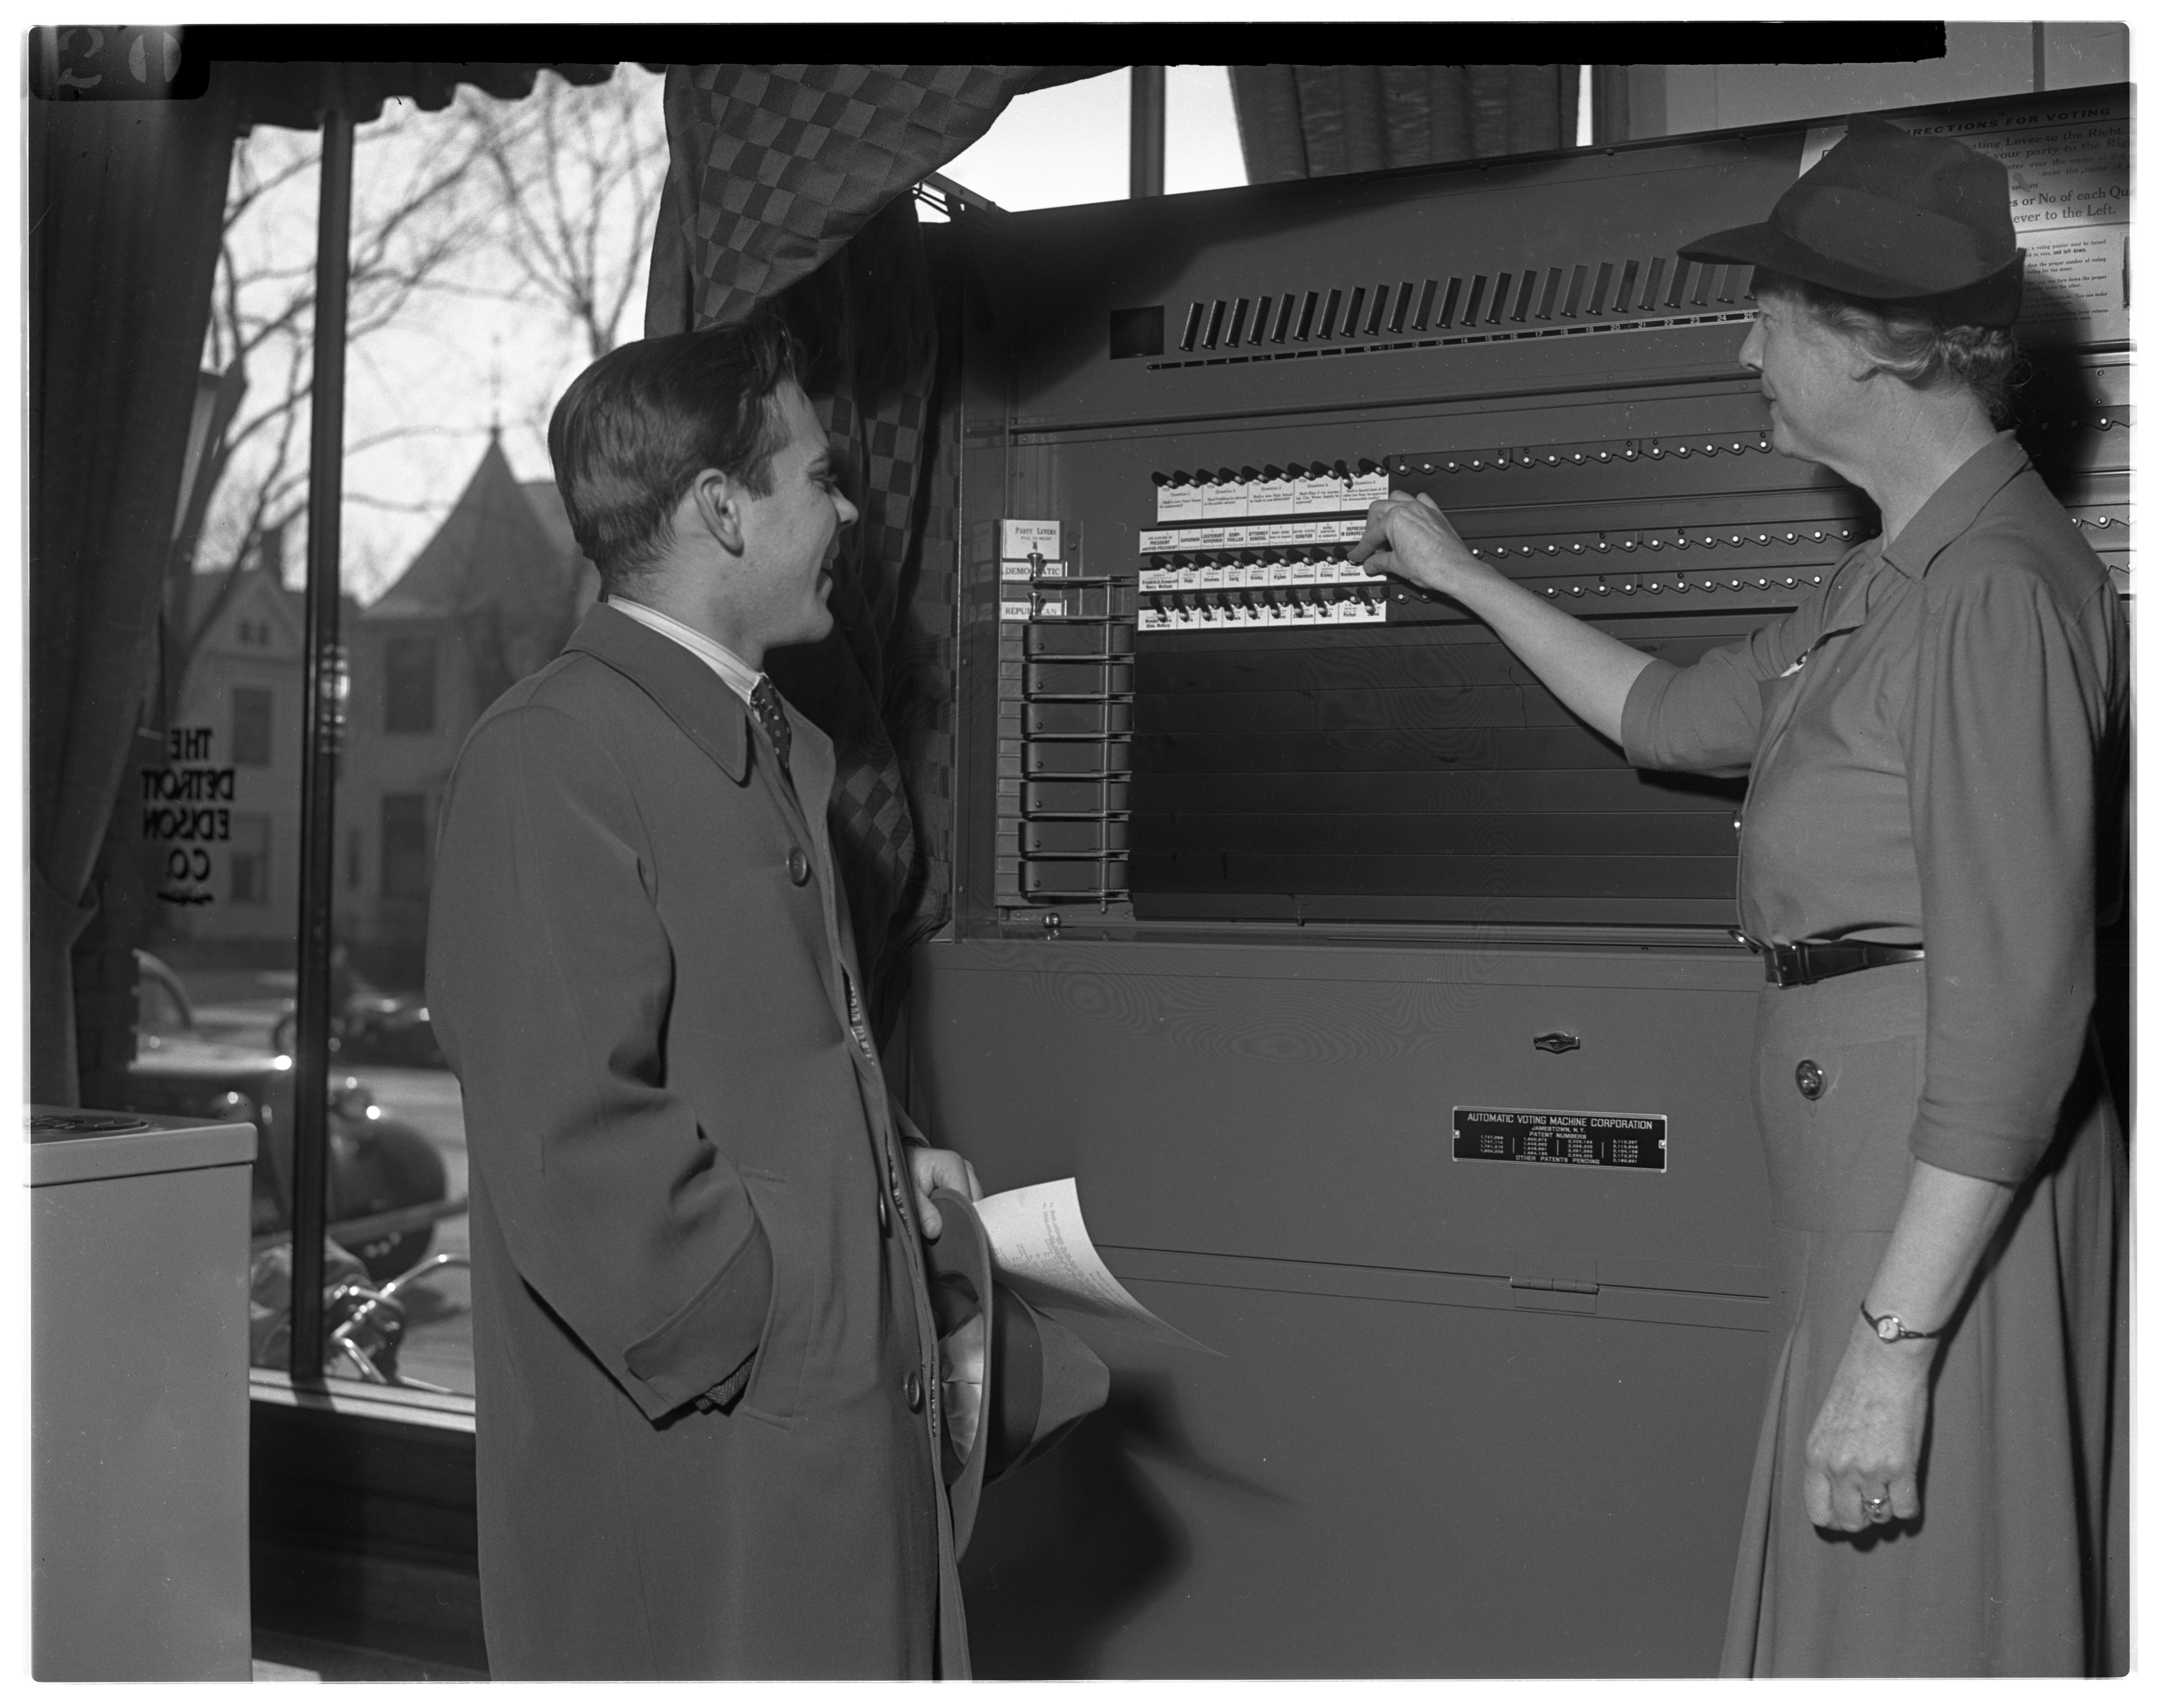 League Of Women Voters Member, DeEtta Forsythe, Demonstrates Voting Machine Operation, March 1942 image